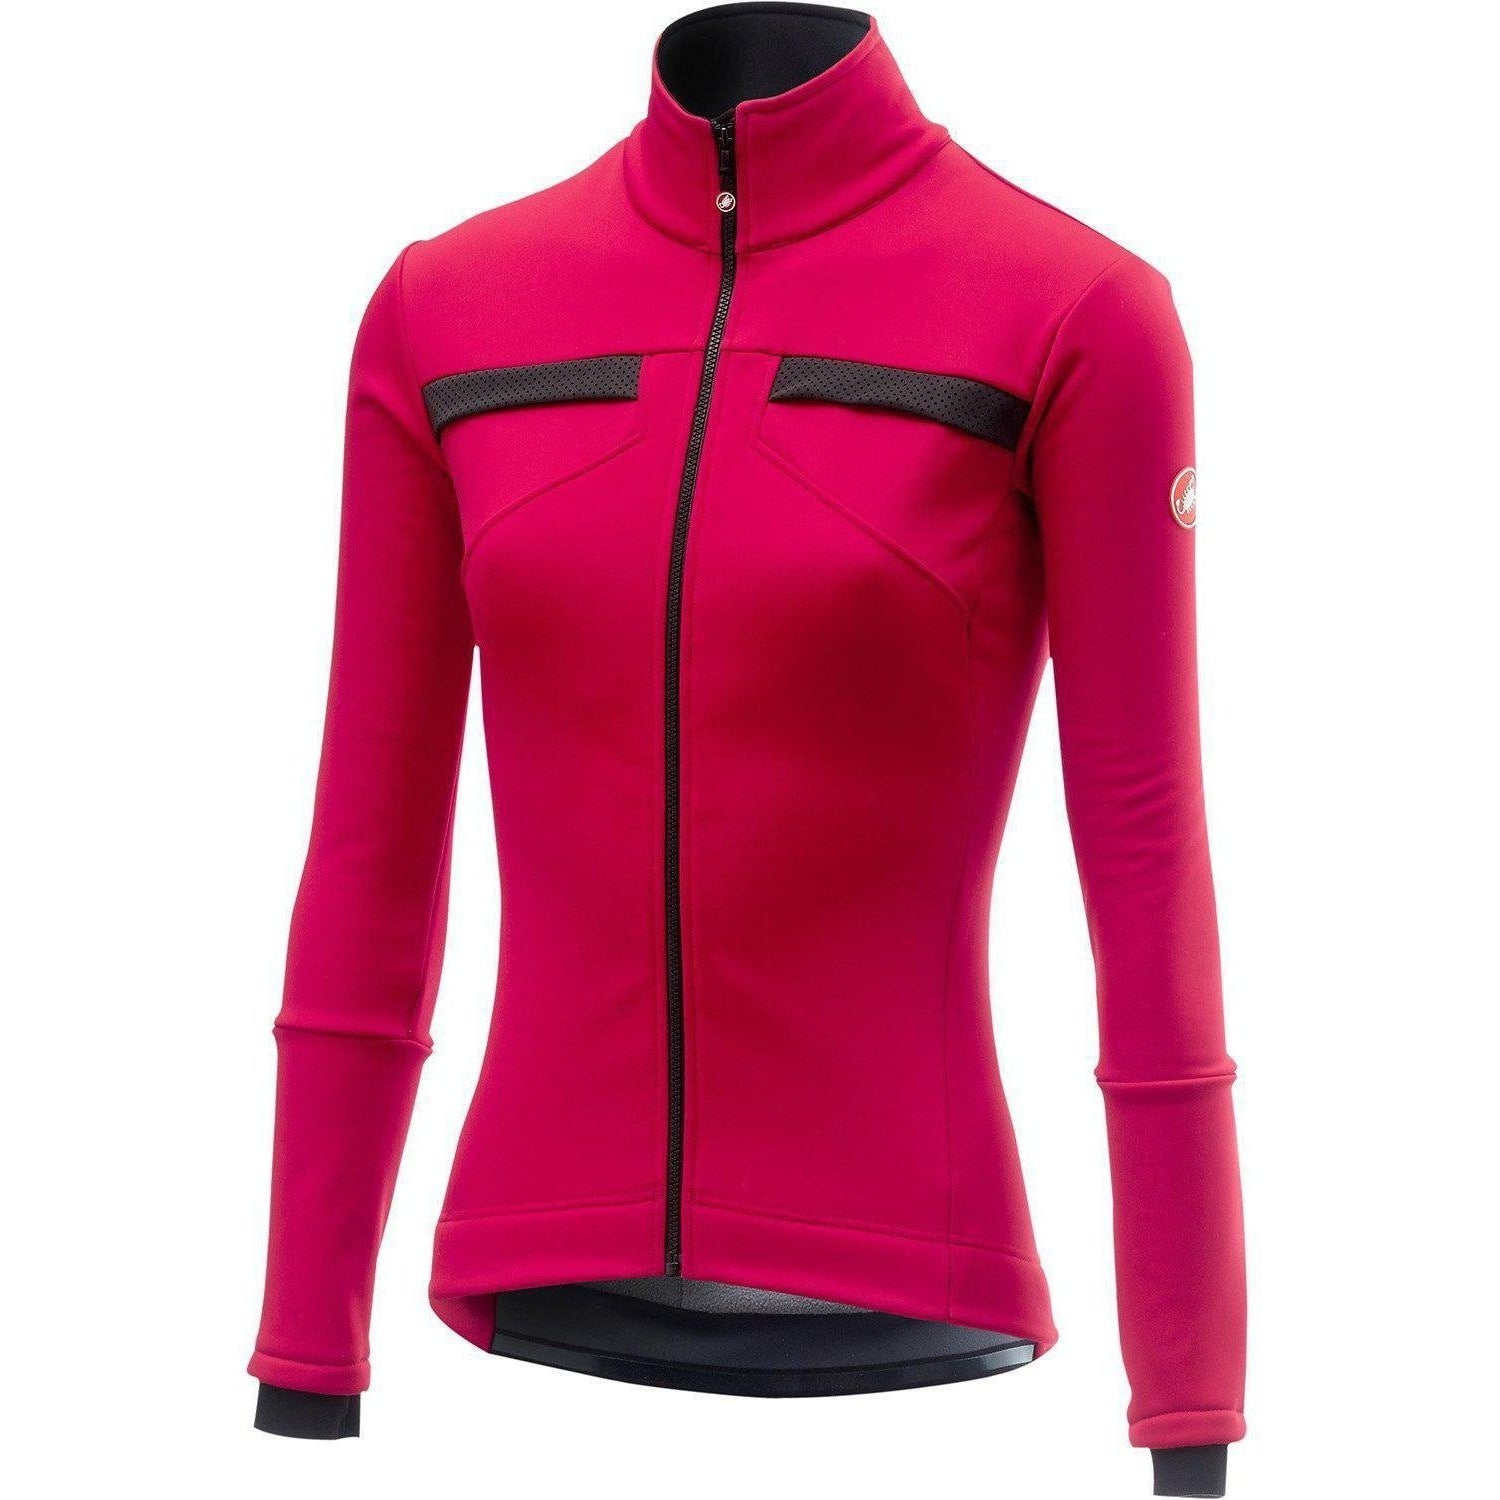 Castelli-Castelli Dinamica Women's Jacket-Electric Magenta-XS-CS185410271-saddleback-elite-performance-cycling